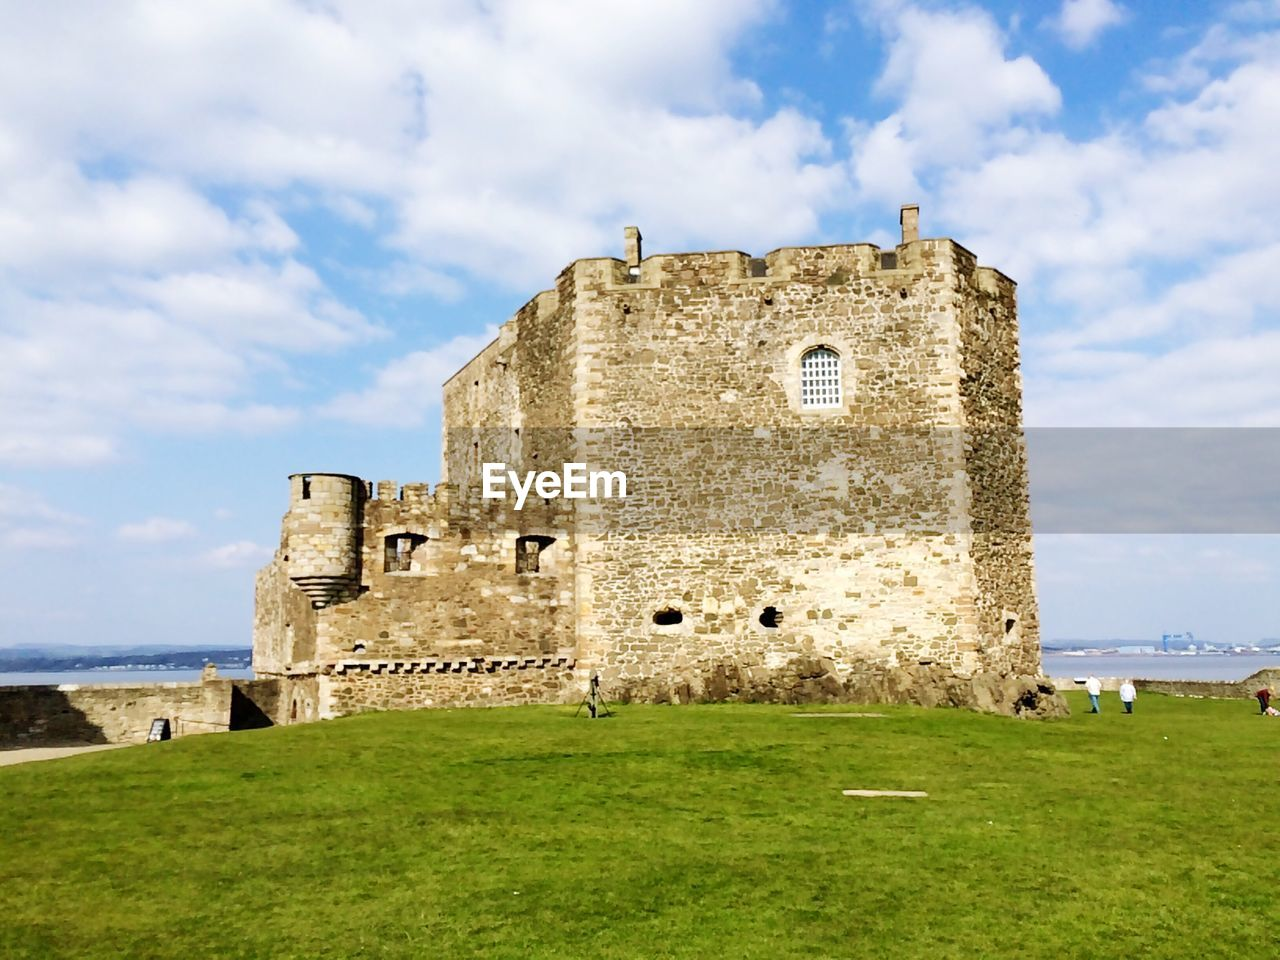 architecture, history, built structure, the past, sky, grass, cloud - sky, nature, building, castle, land, building exterior, day, ancient, plant, old, fort, travel destinations, travel, tourism, outdoors, no people, ruined